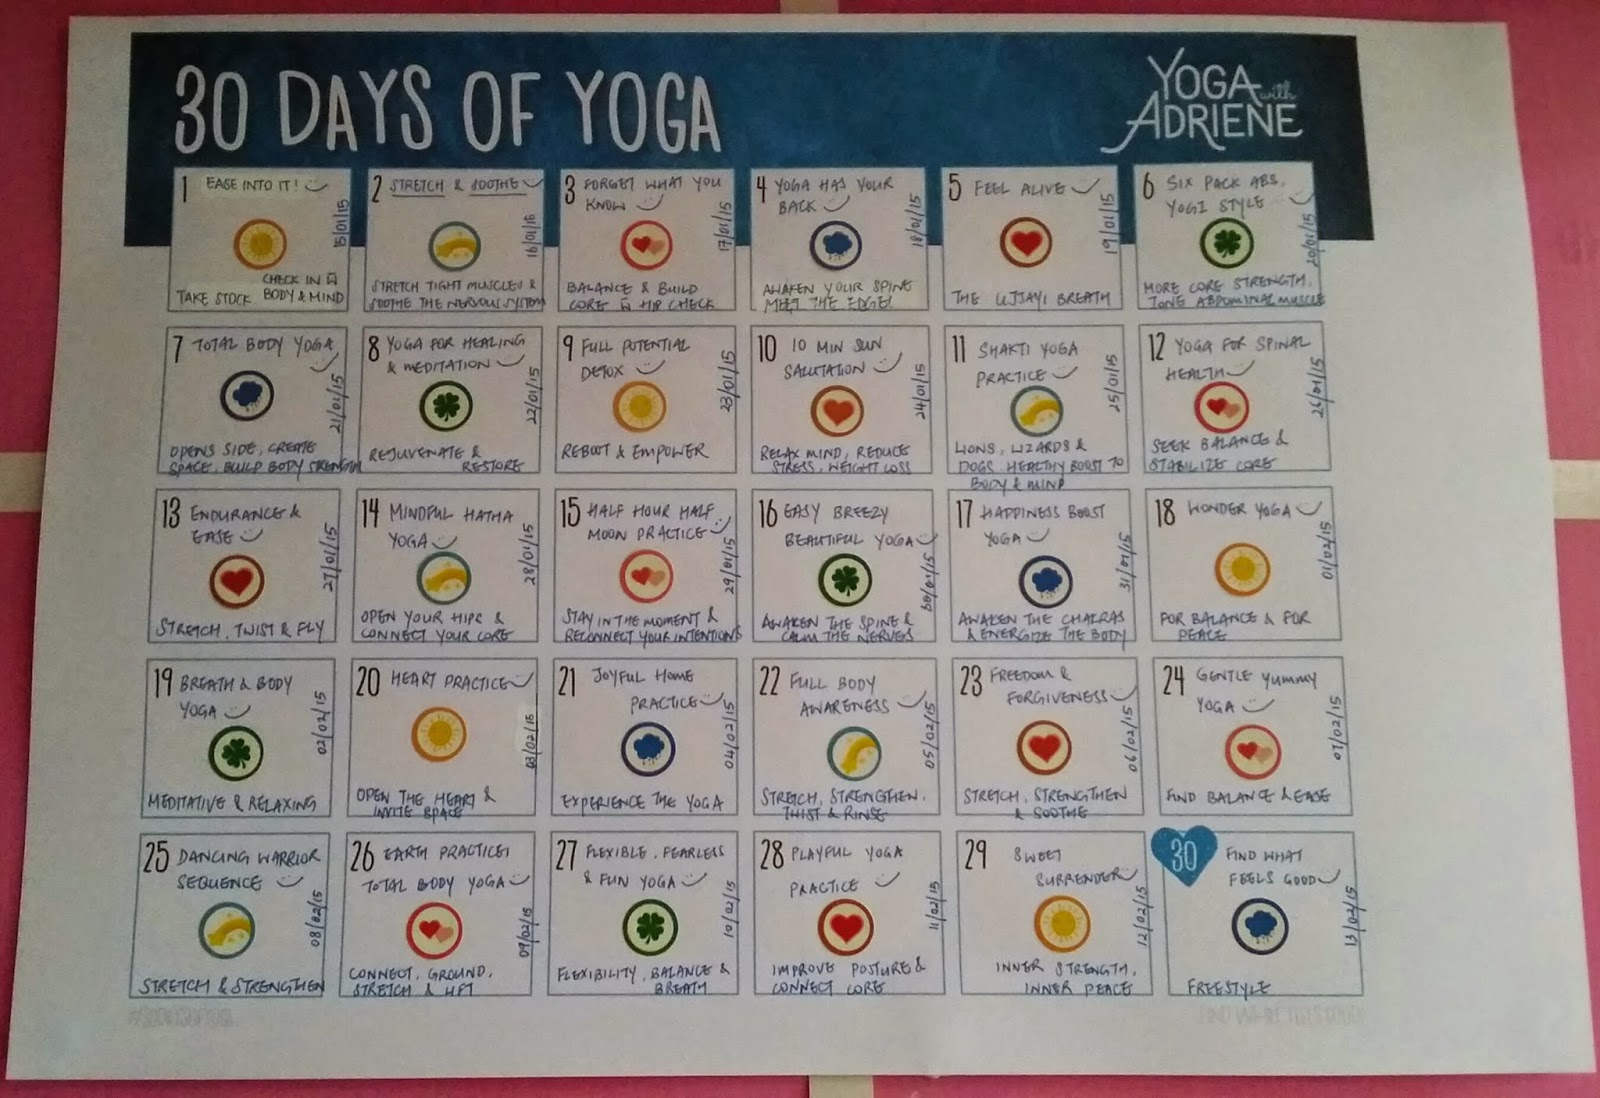 30 days of yoga with Adriene - COMPLETED!